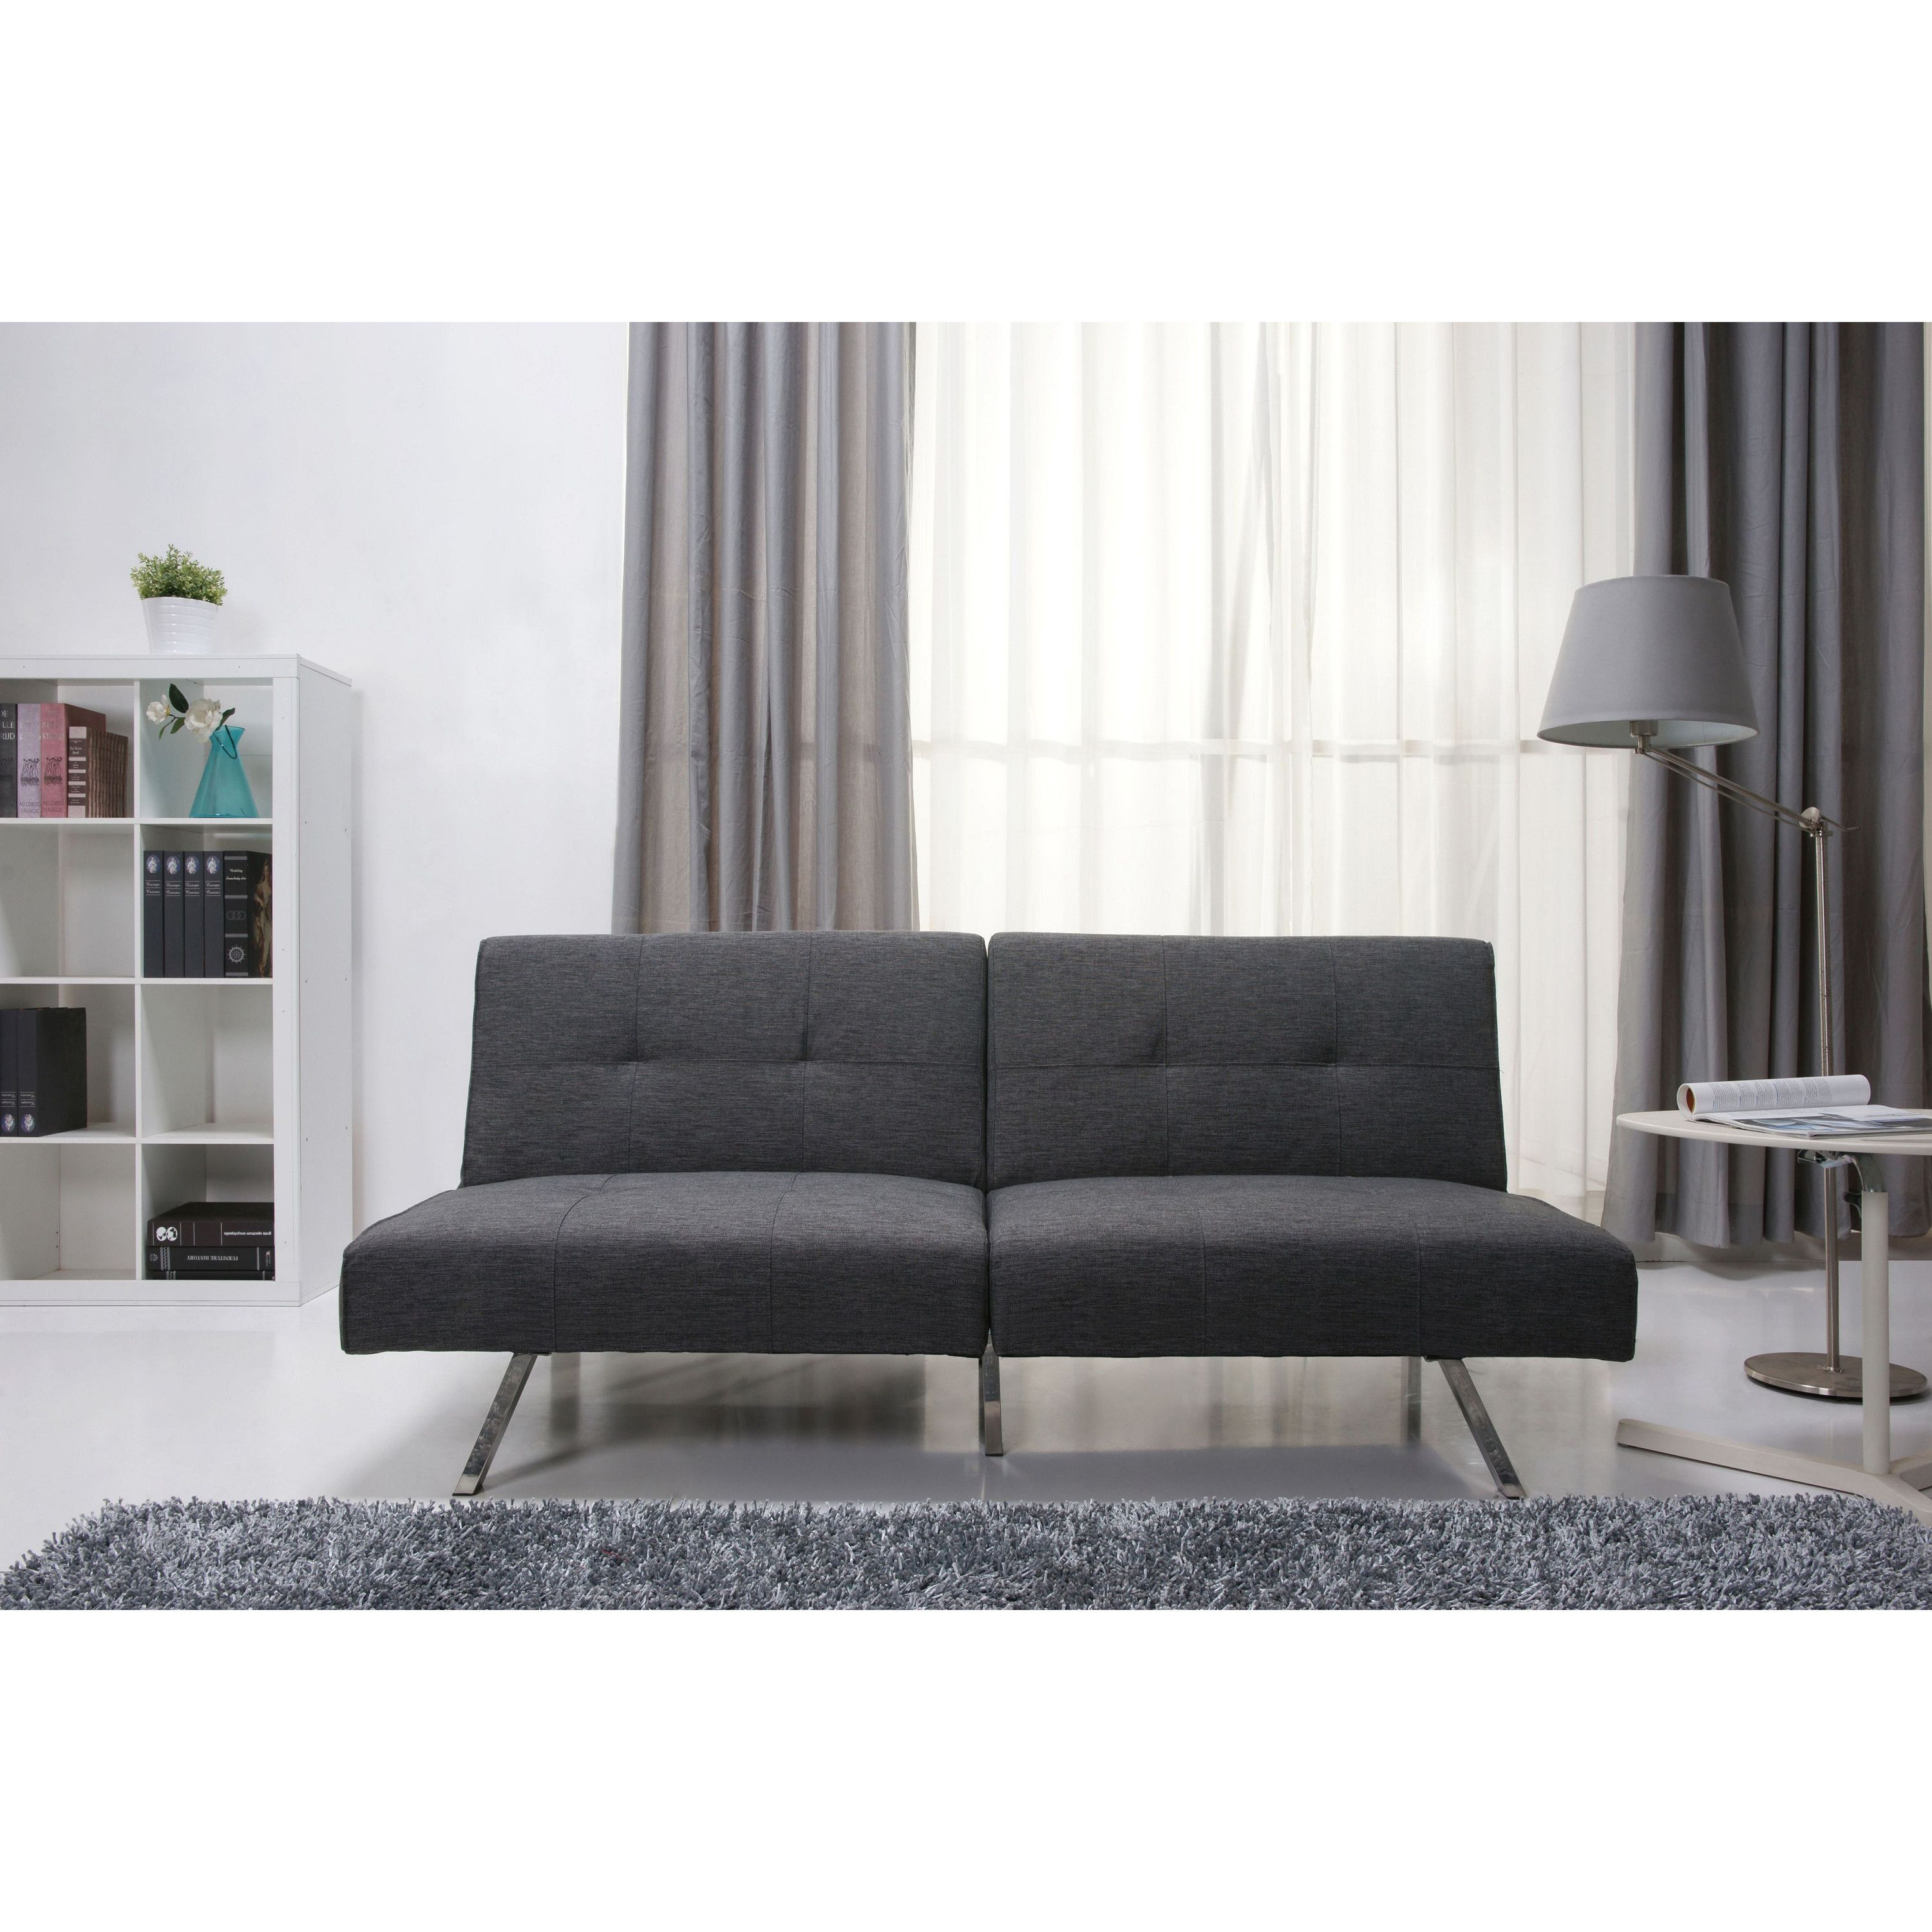 You'll love the Rosehill Foldable Futon Sofa Bed at Wayfair - Great Deals on all Furniture products with Free Shipping on most stuff, even the big stuff.